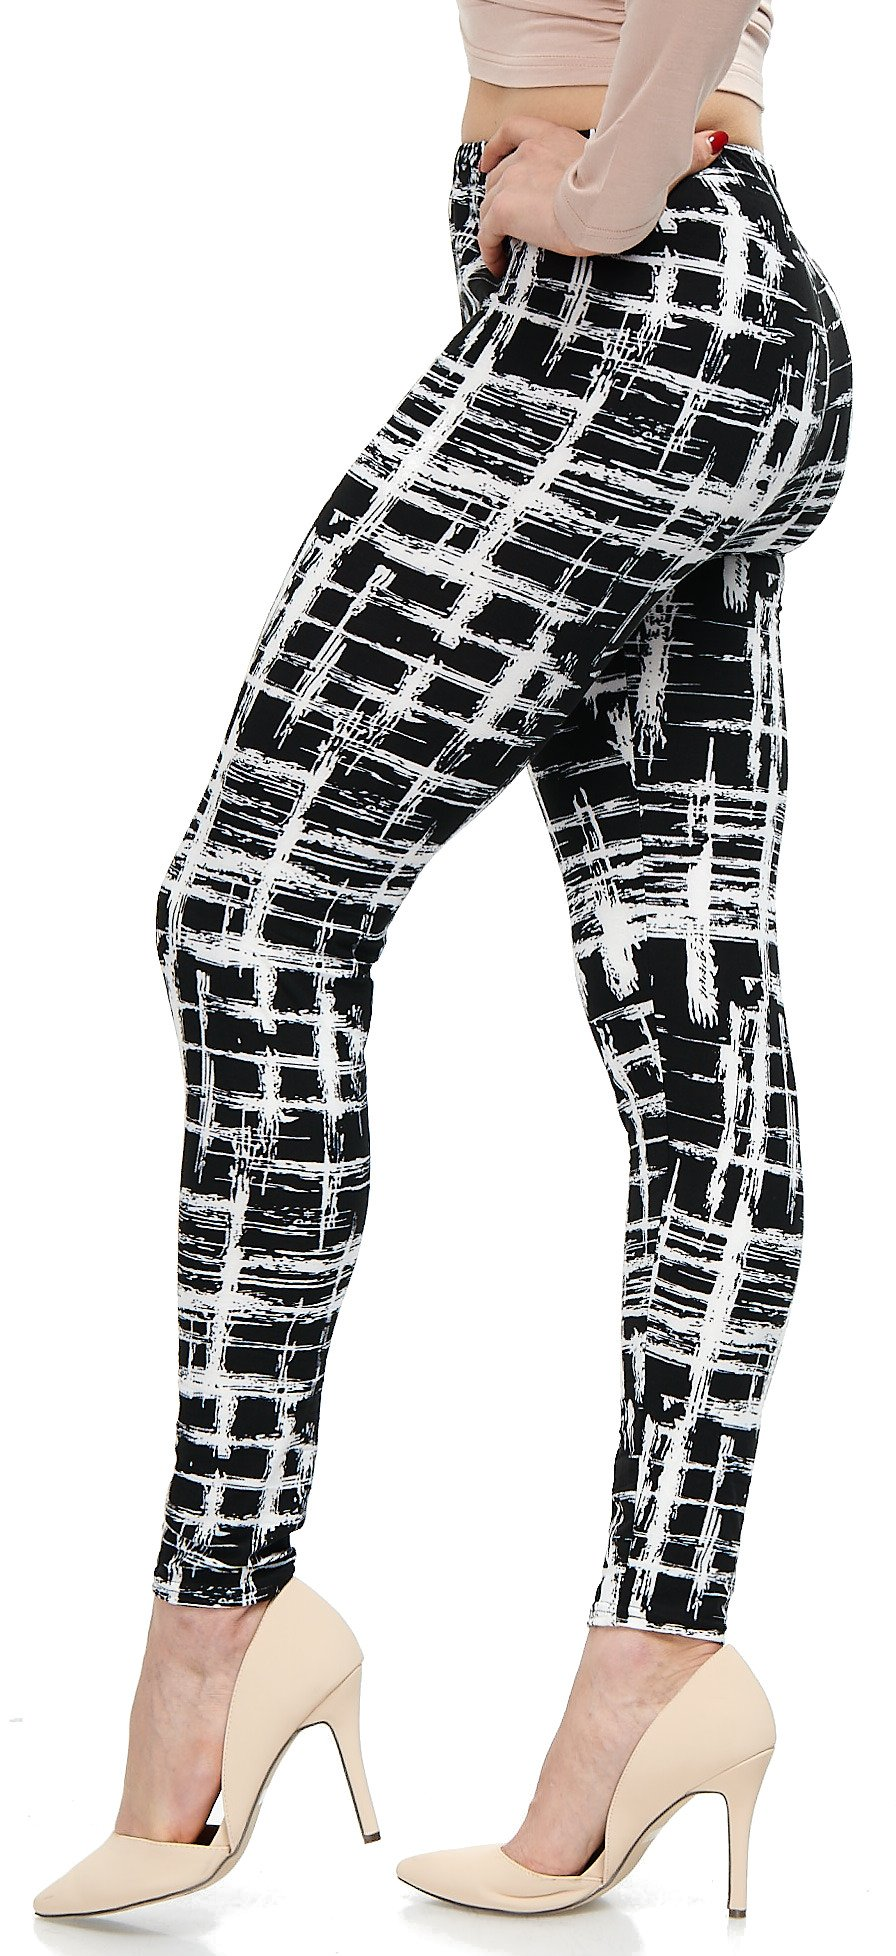 LMB Lush Moda Extra Soft Leggings with Designs- Variety of Prints - 720F Black White Stripes B5